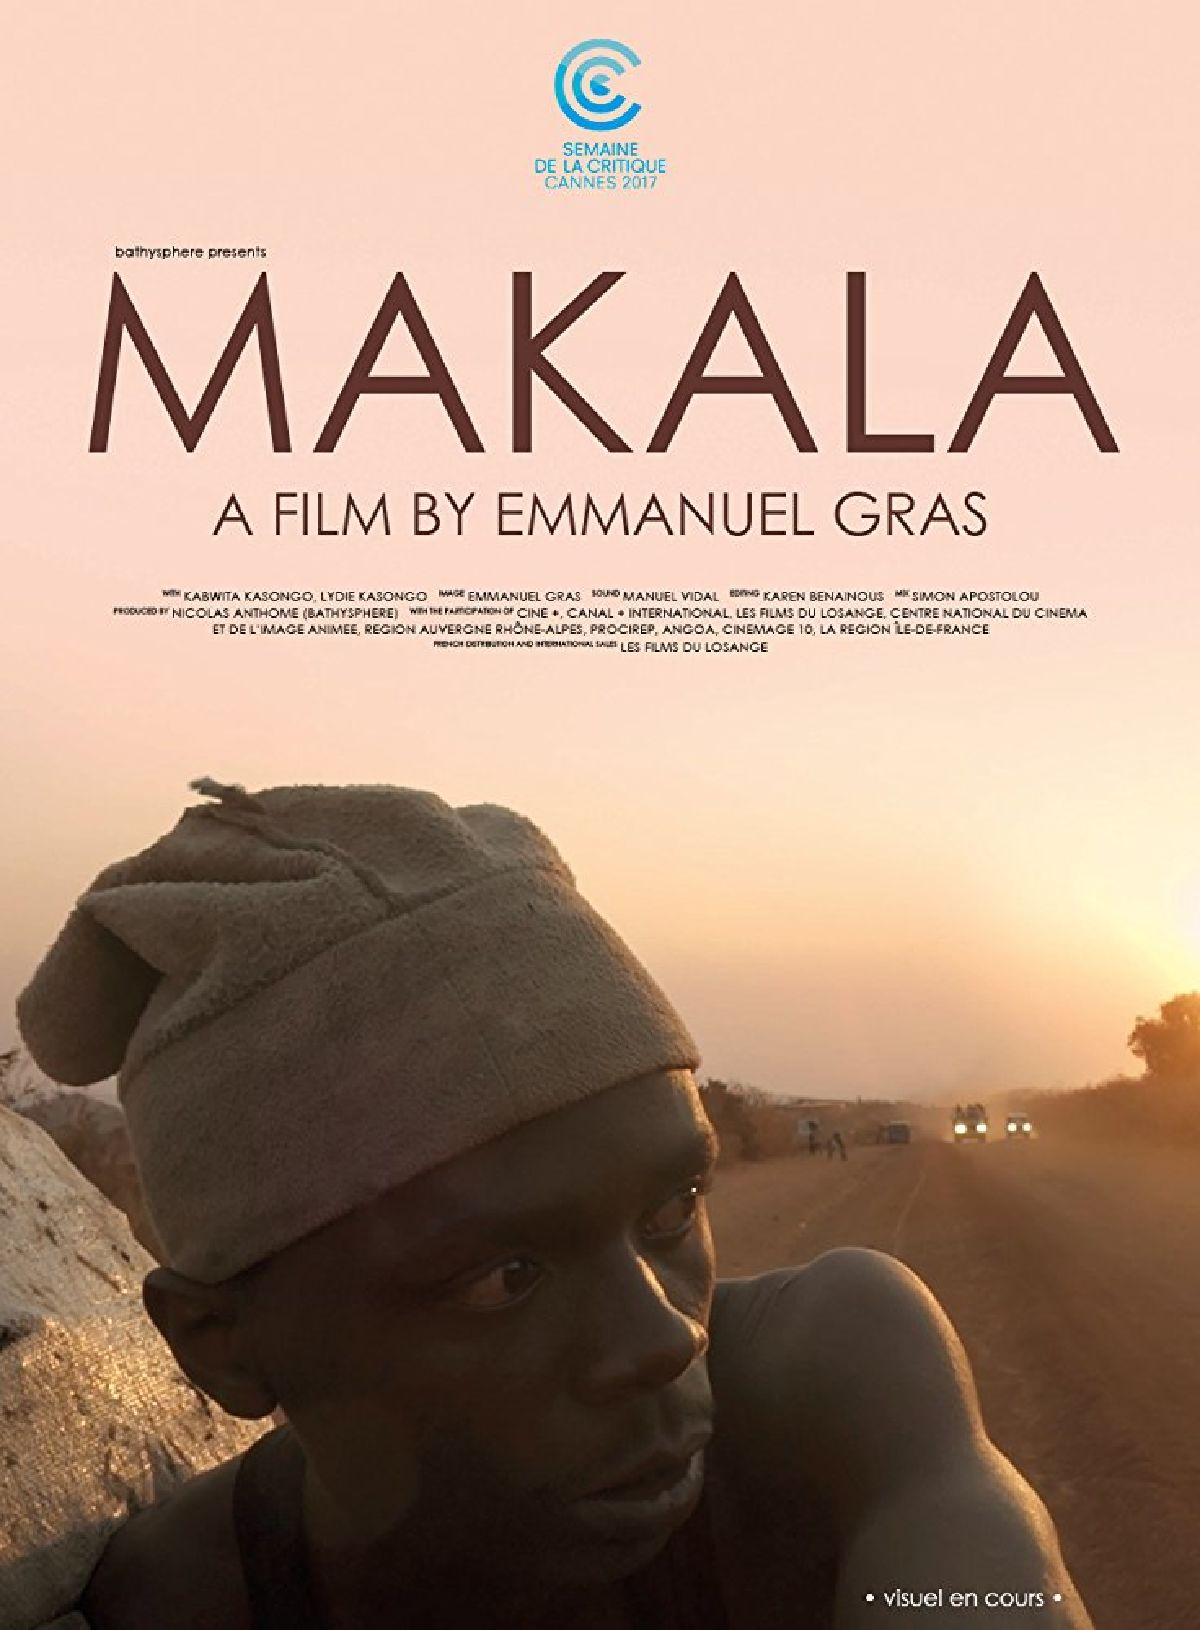 'Makala' movie poster